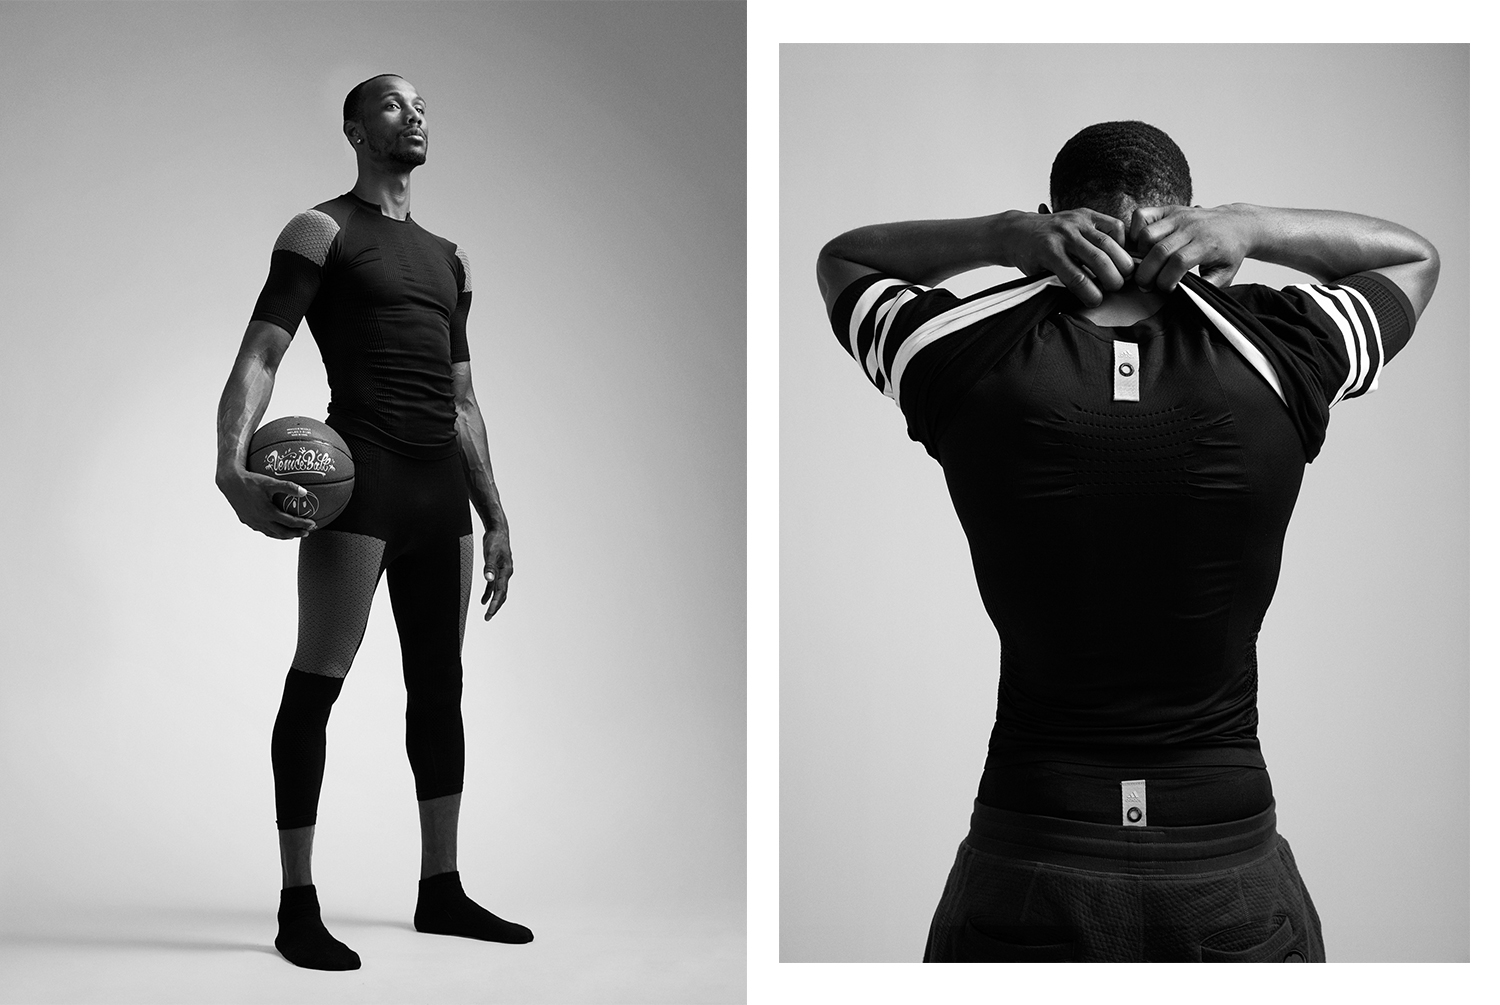 Two outfit shots of a Veniceball League player with in an Adidas outfit photographed by Maximilian Baier